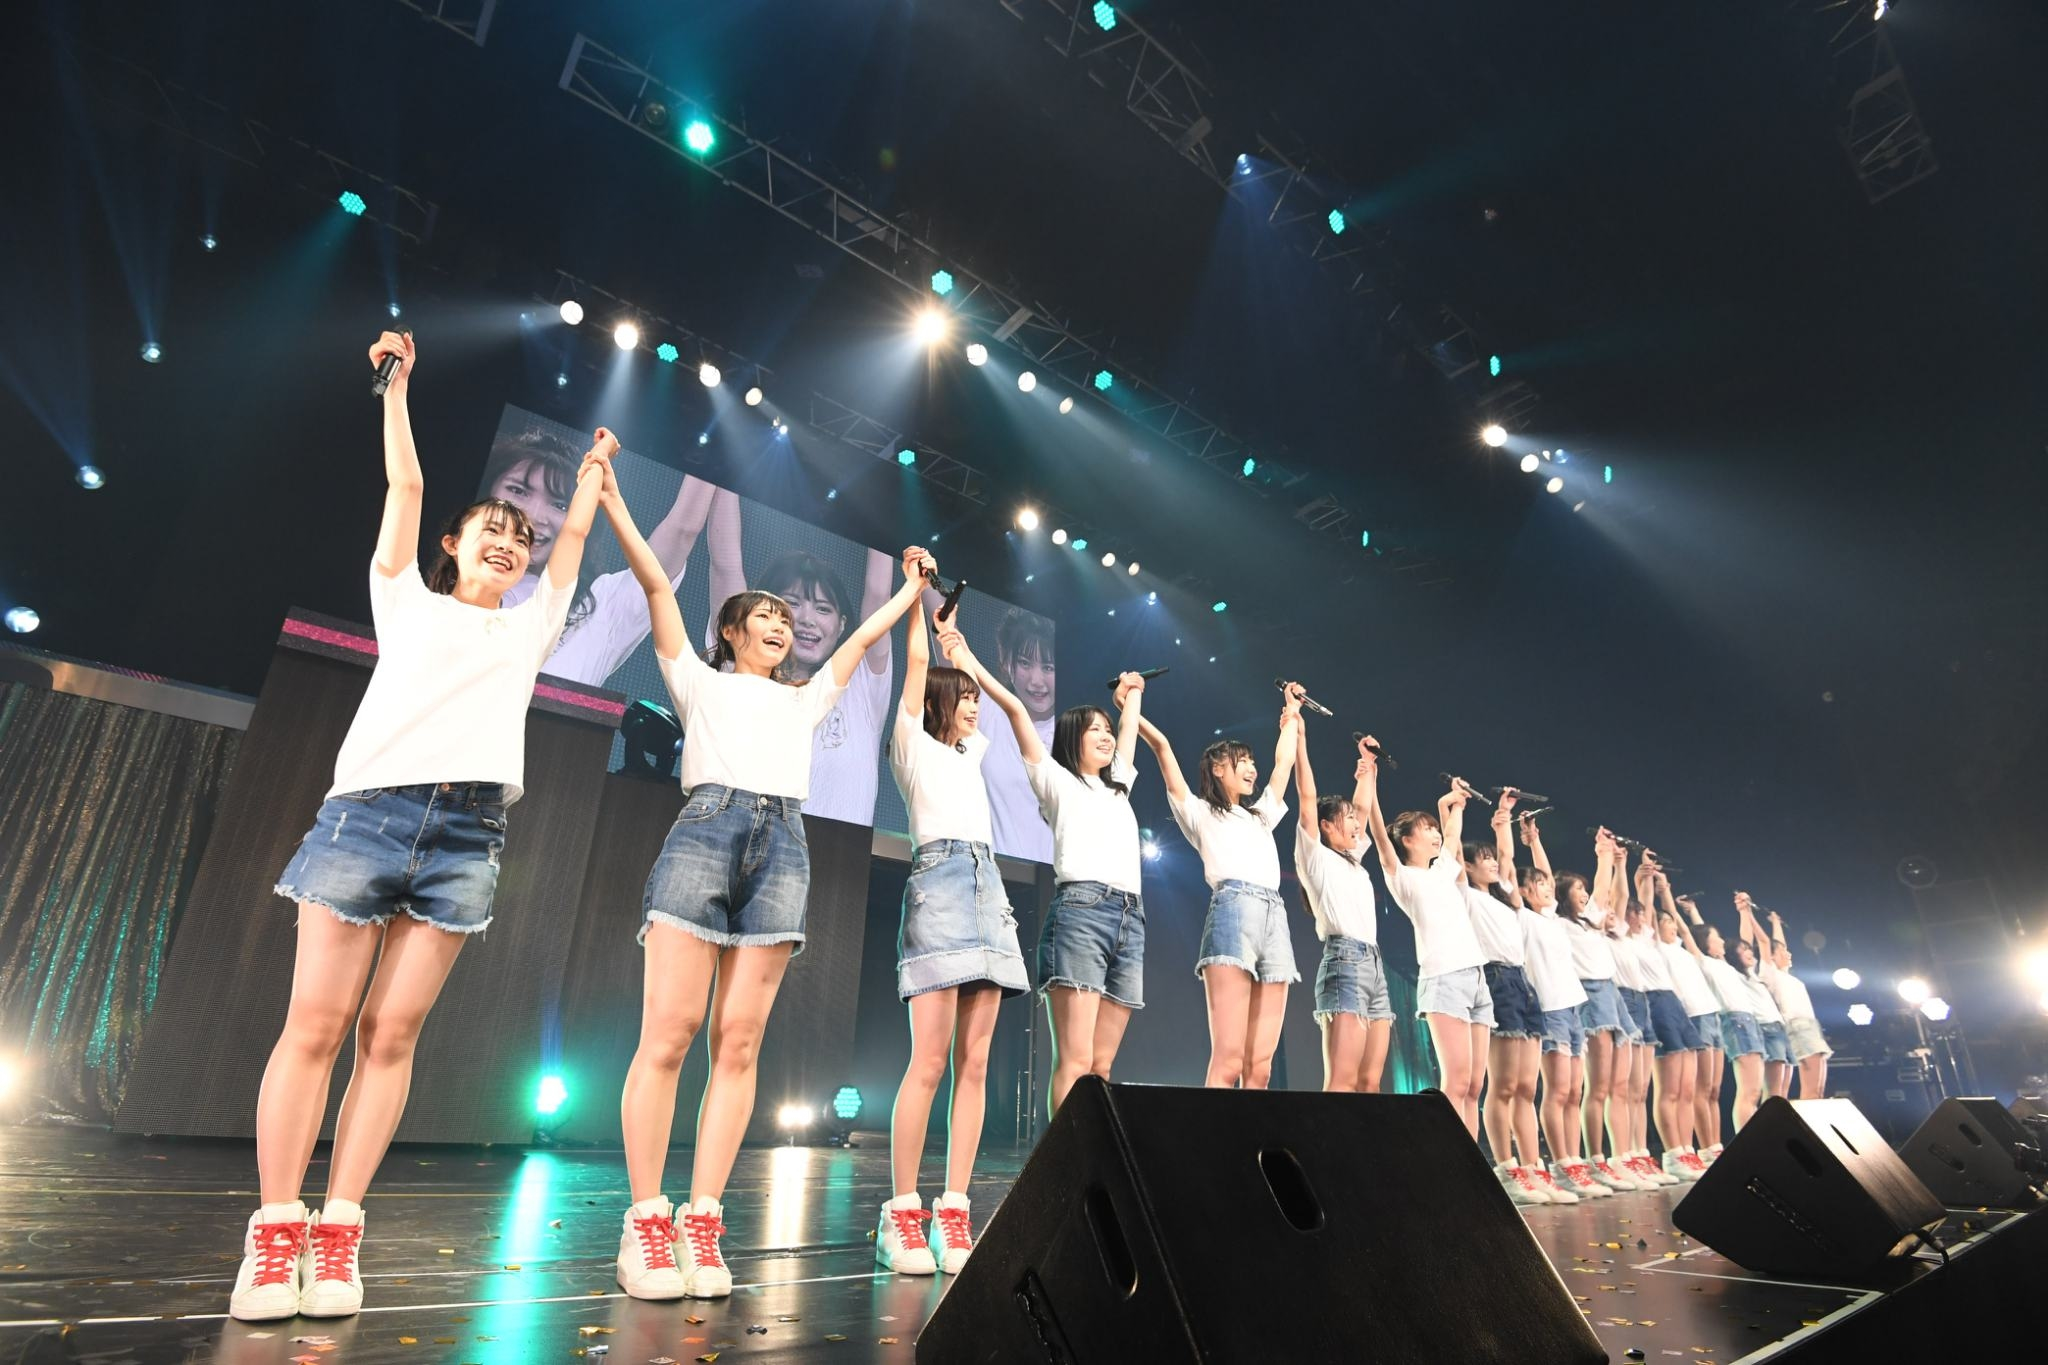 【Web連載コラム】NGT48西村菜那子の陸上日記#13